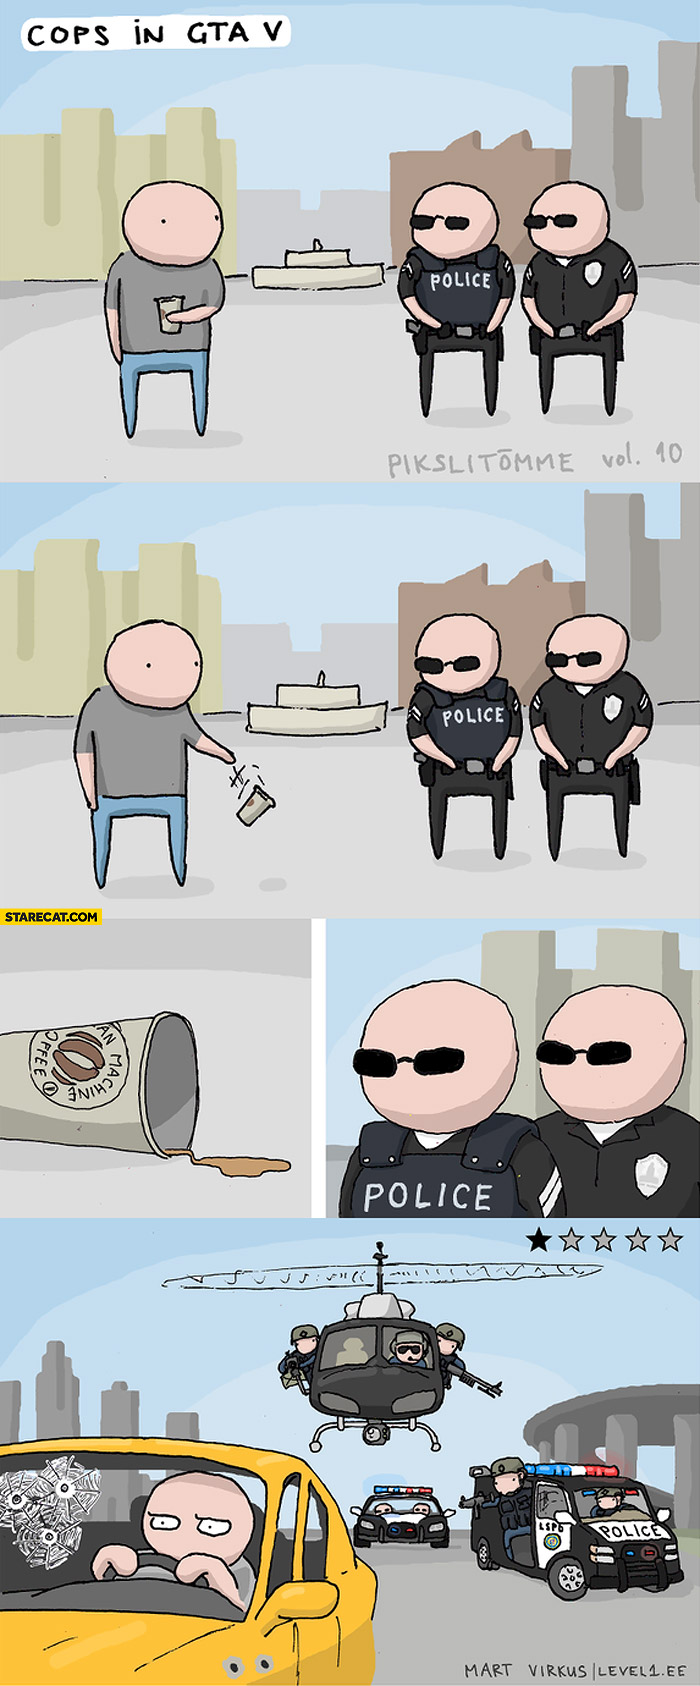 Cops in GTA V